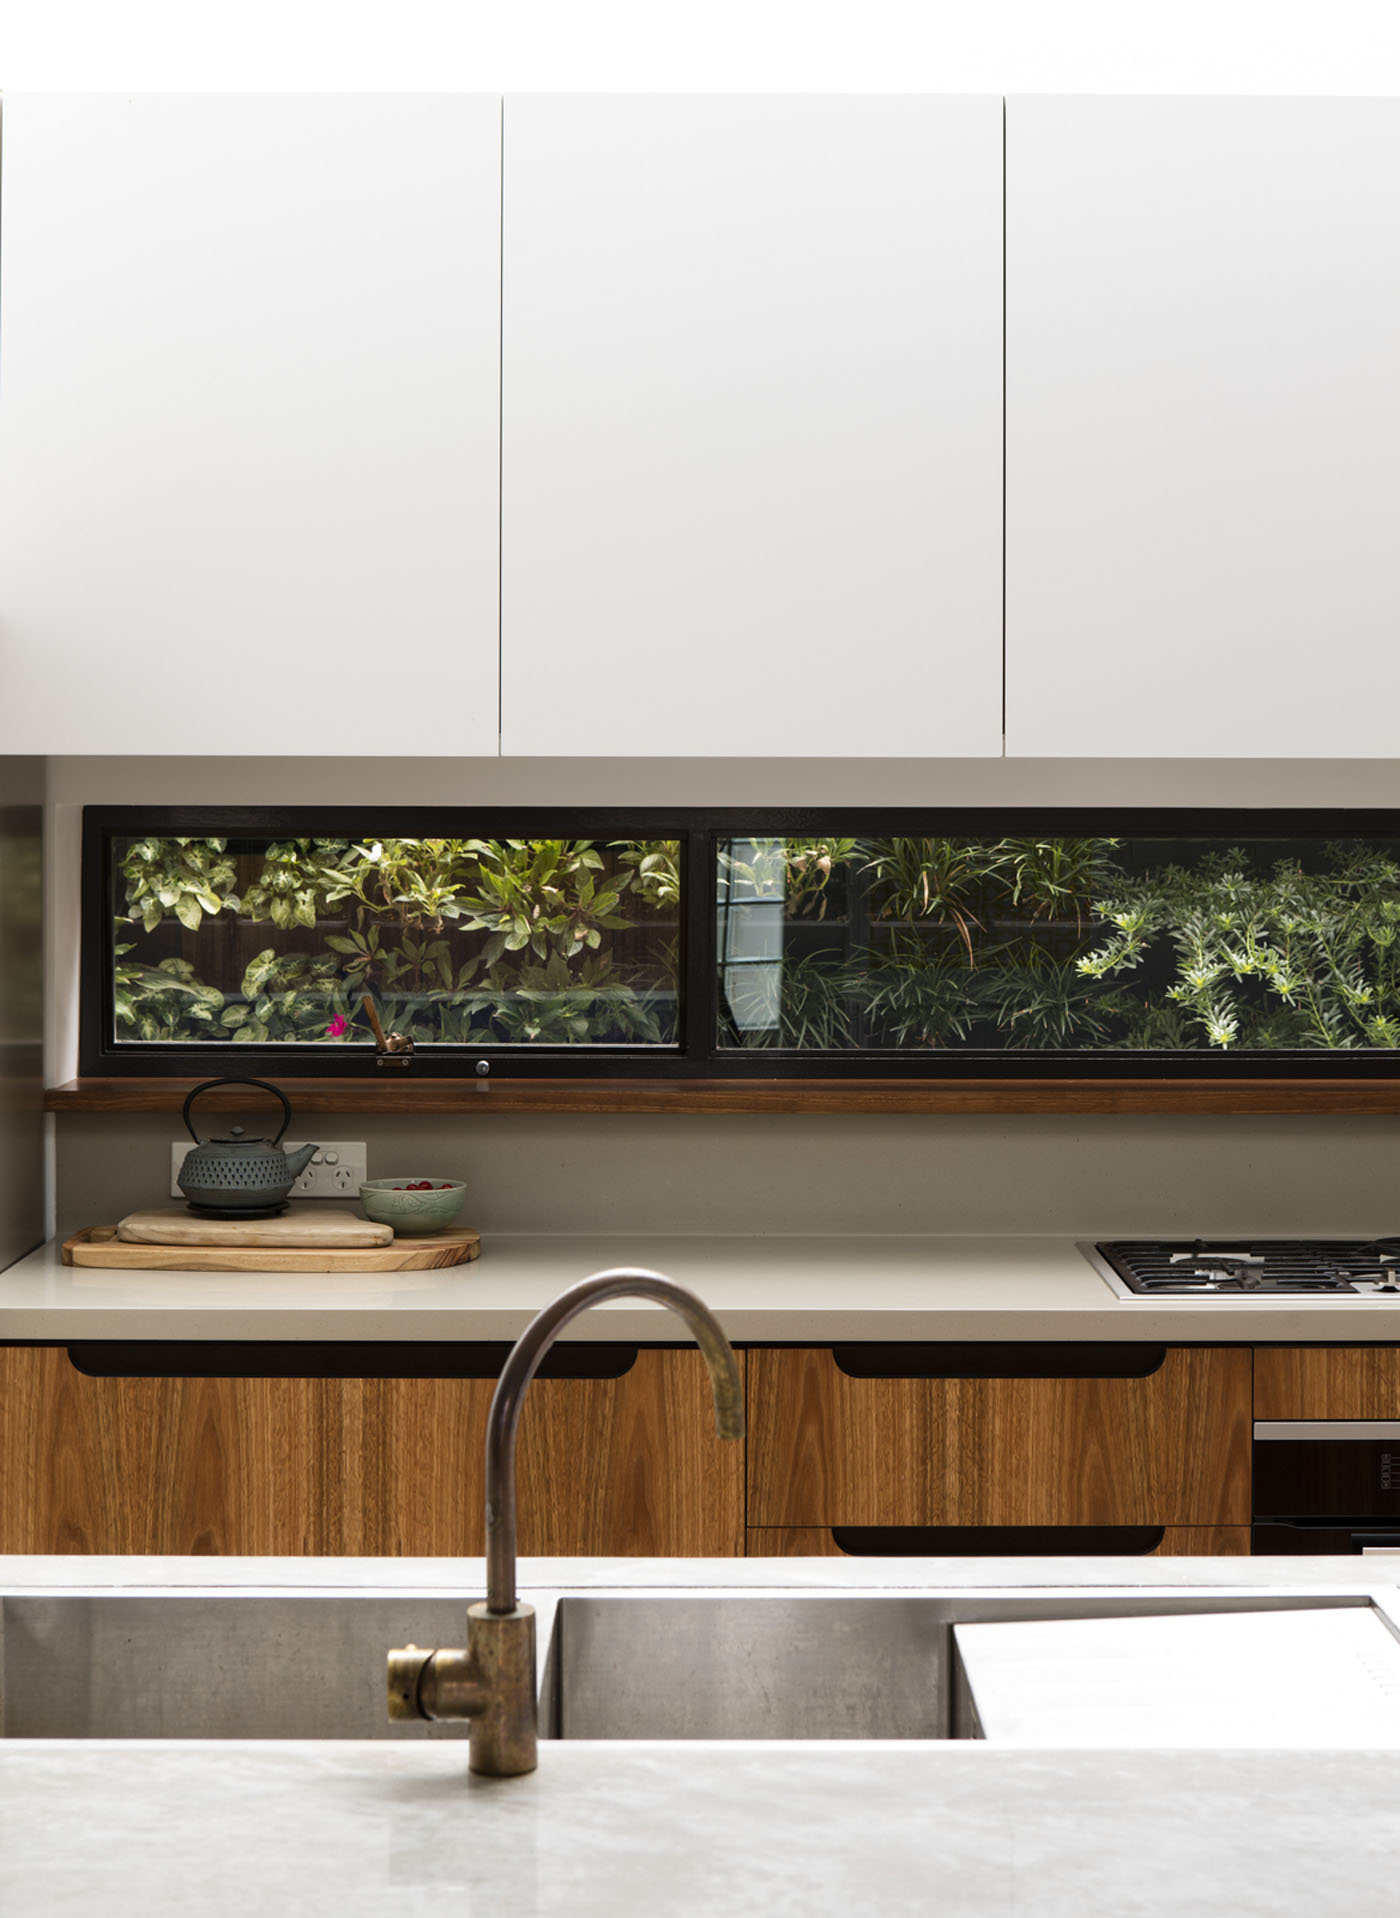 Conway Atkins House in Dover Heights by Sydney architect Sam Crawford Architect. The kitchen features a picture window looking out onto a green courtyard.